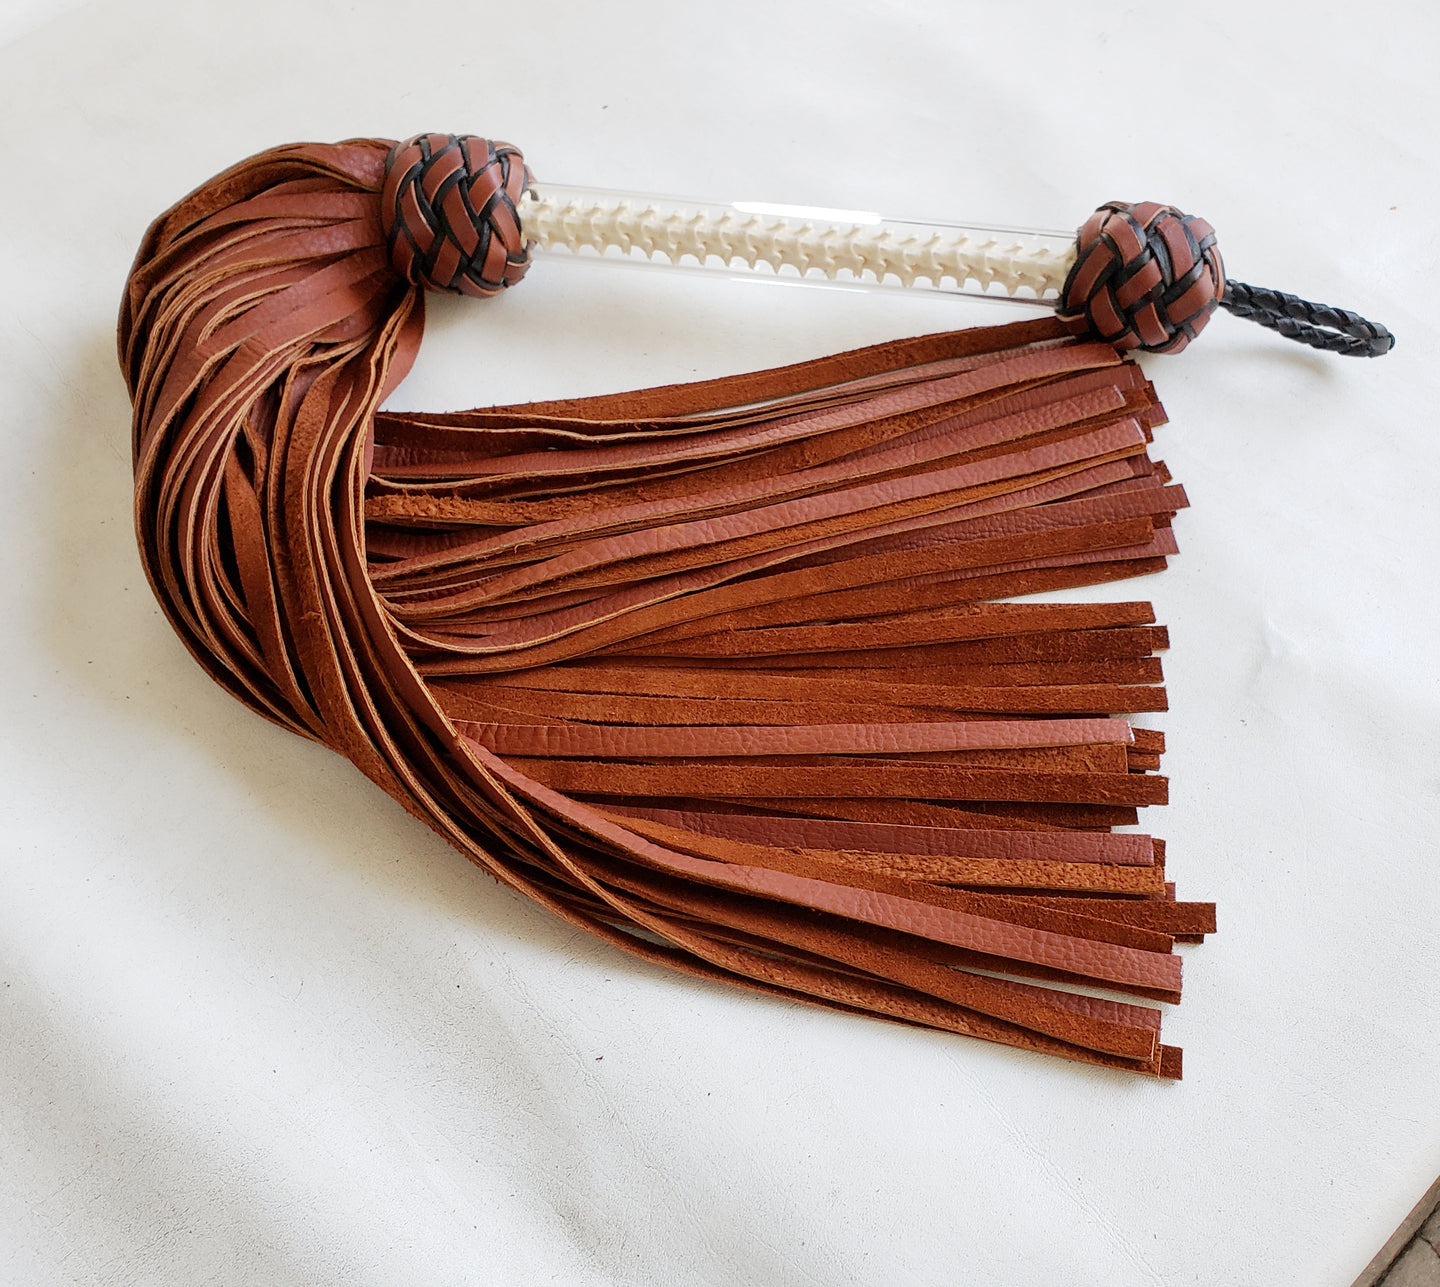 MASSIVE Bison Flogger with Snake Spine Handle - 3 Foot Flogger